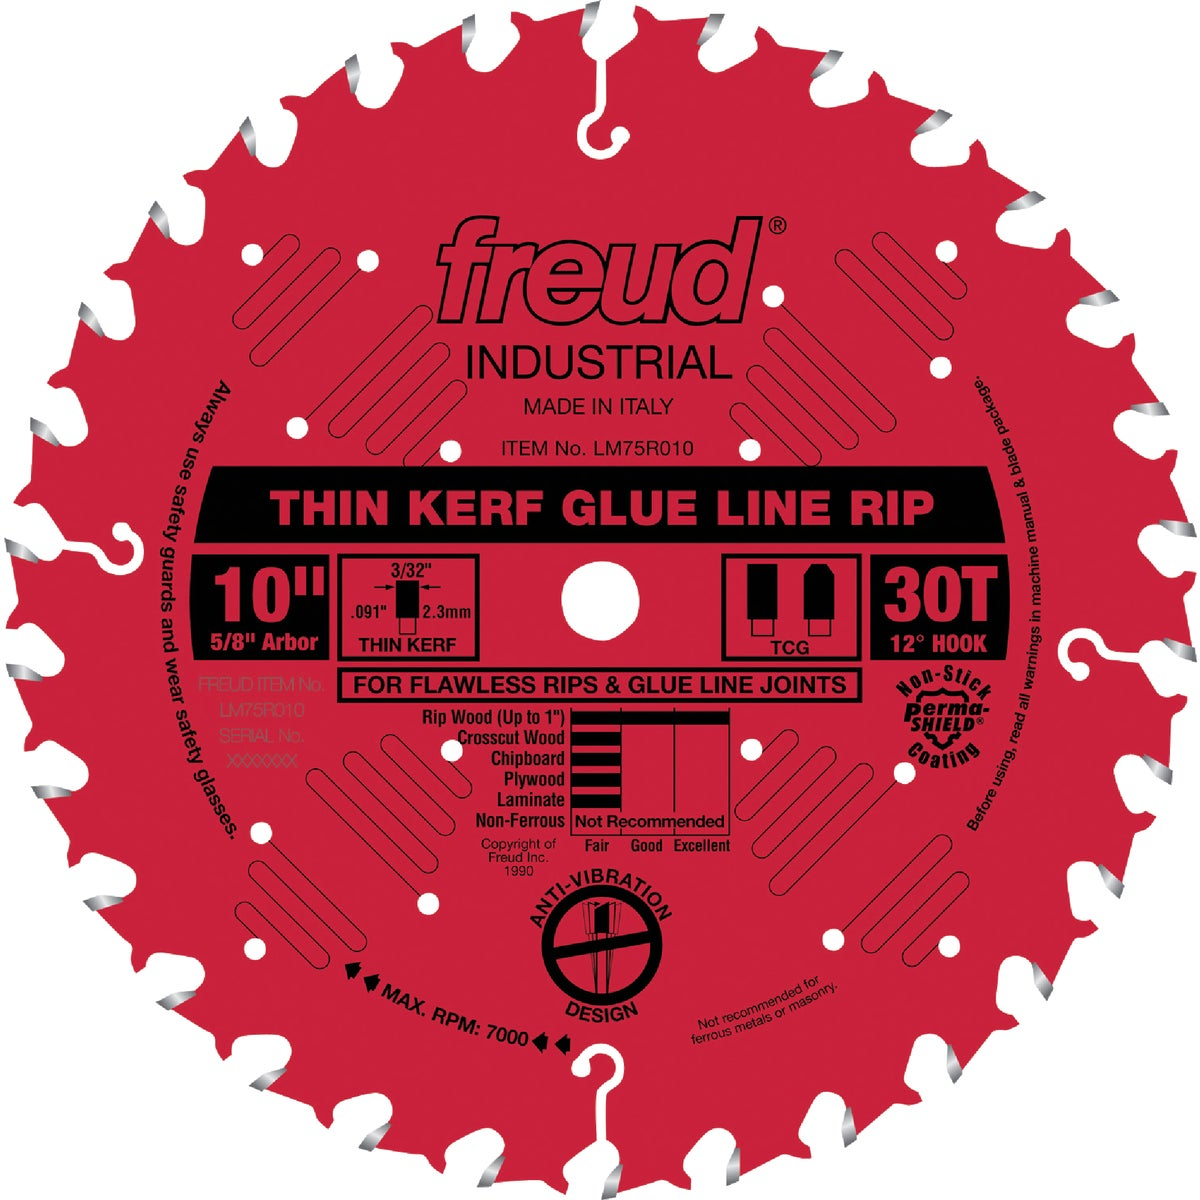 "10""X30T GLU LN RIP BLADE - LM75R010 by Freud Inc"